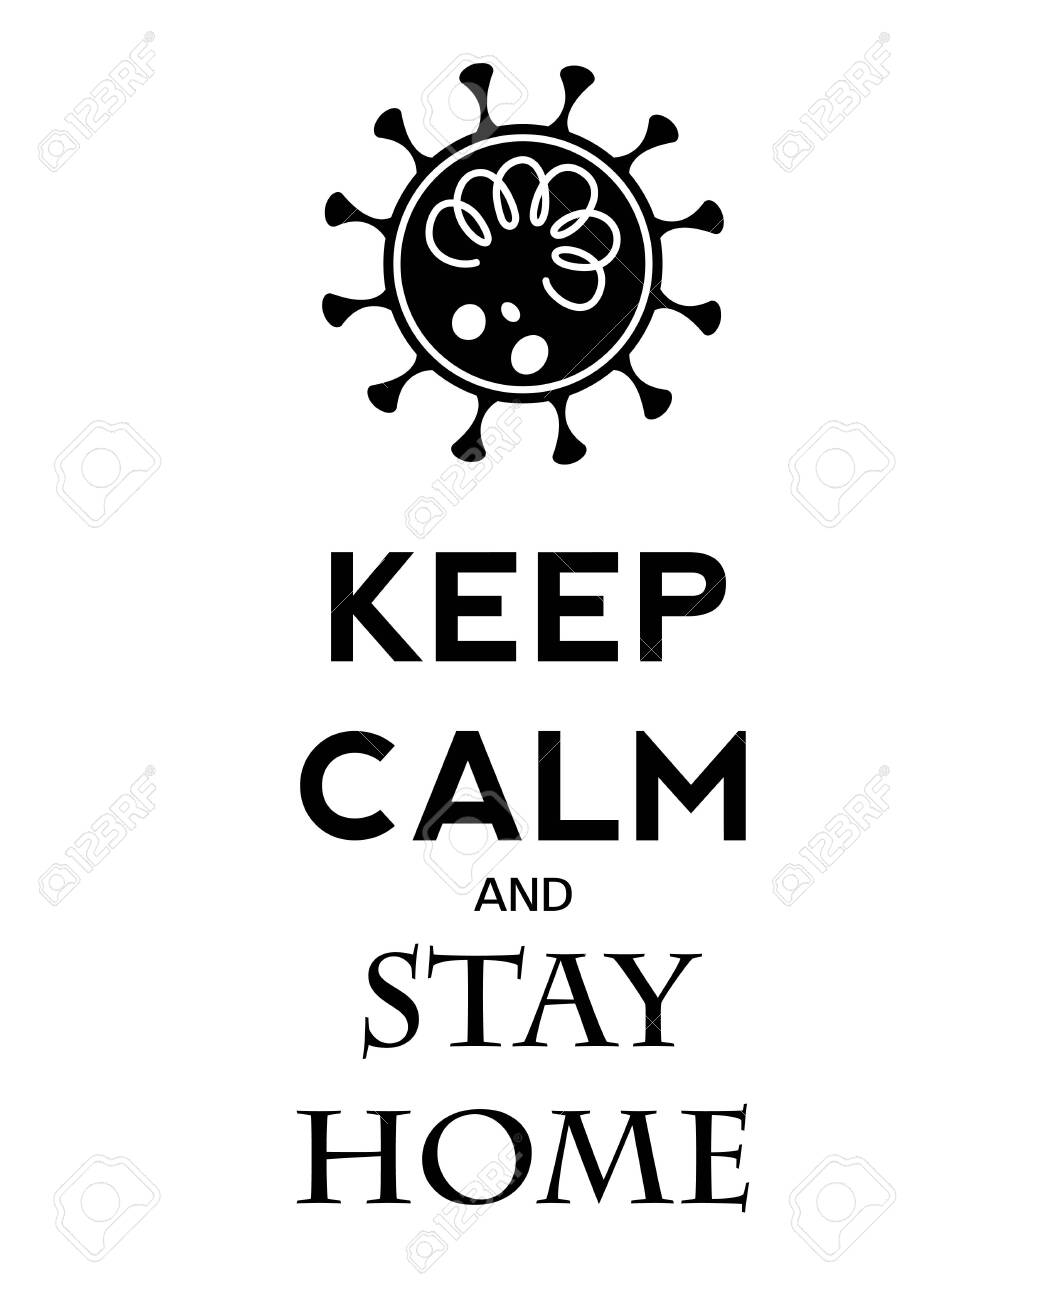 Keep calm and stay home. Protection covid19. Vector. - 142917118